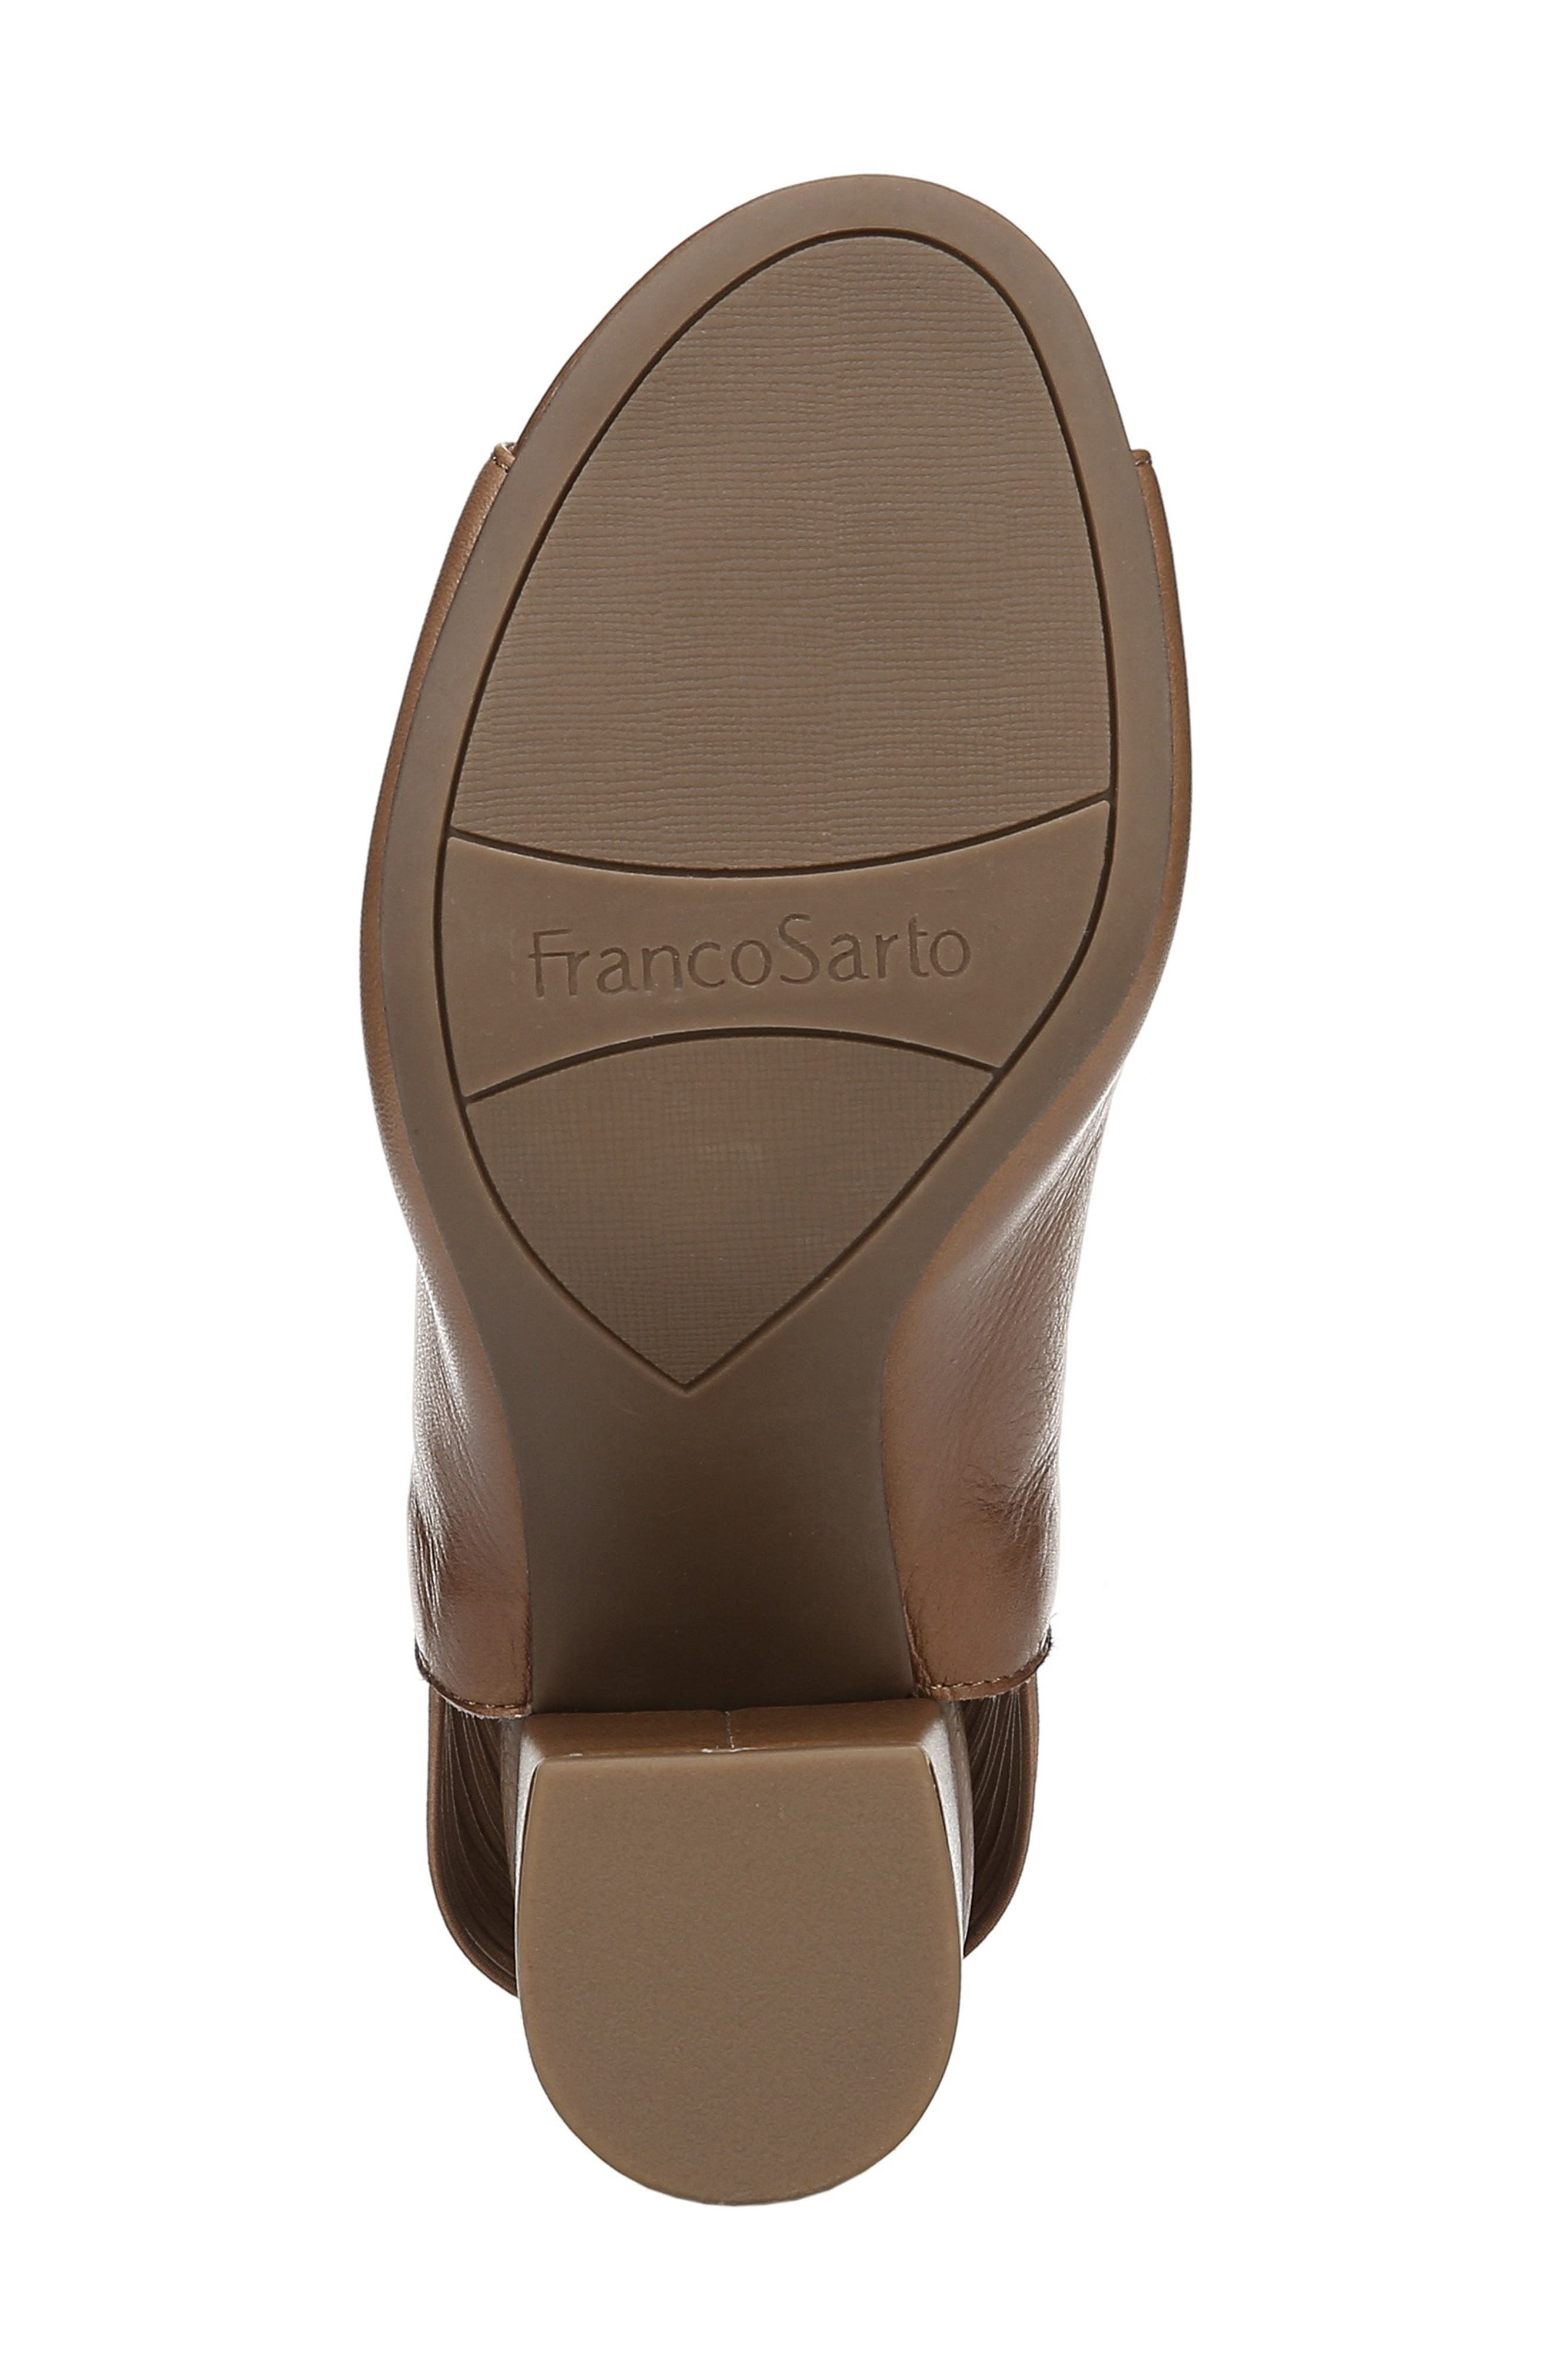 FRANCO SARTO, Opaline Corded Slingback Sandal, Alternate thumbnail 6, color, LIGHT BROWN LEATHER